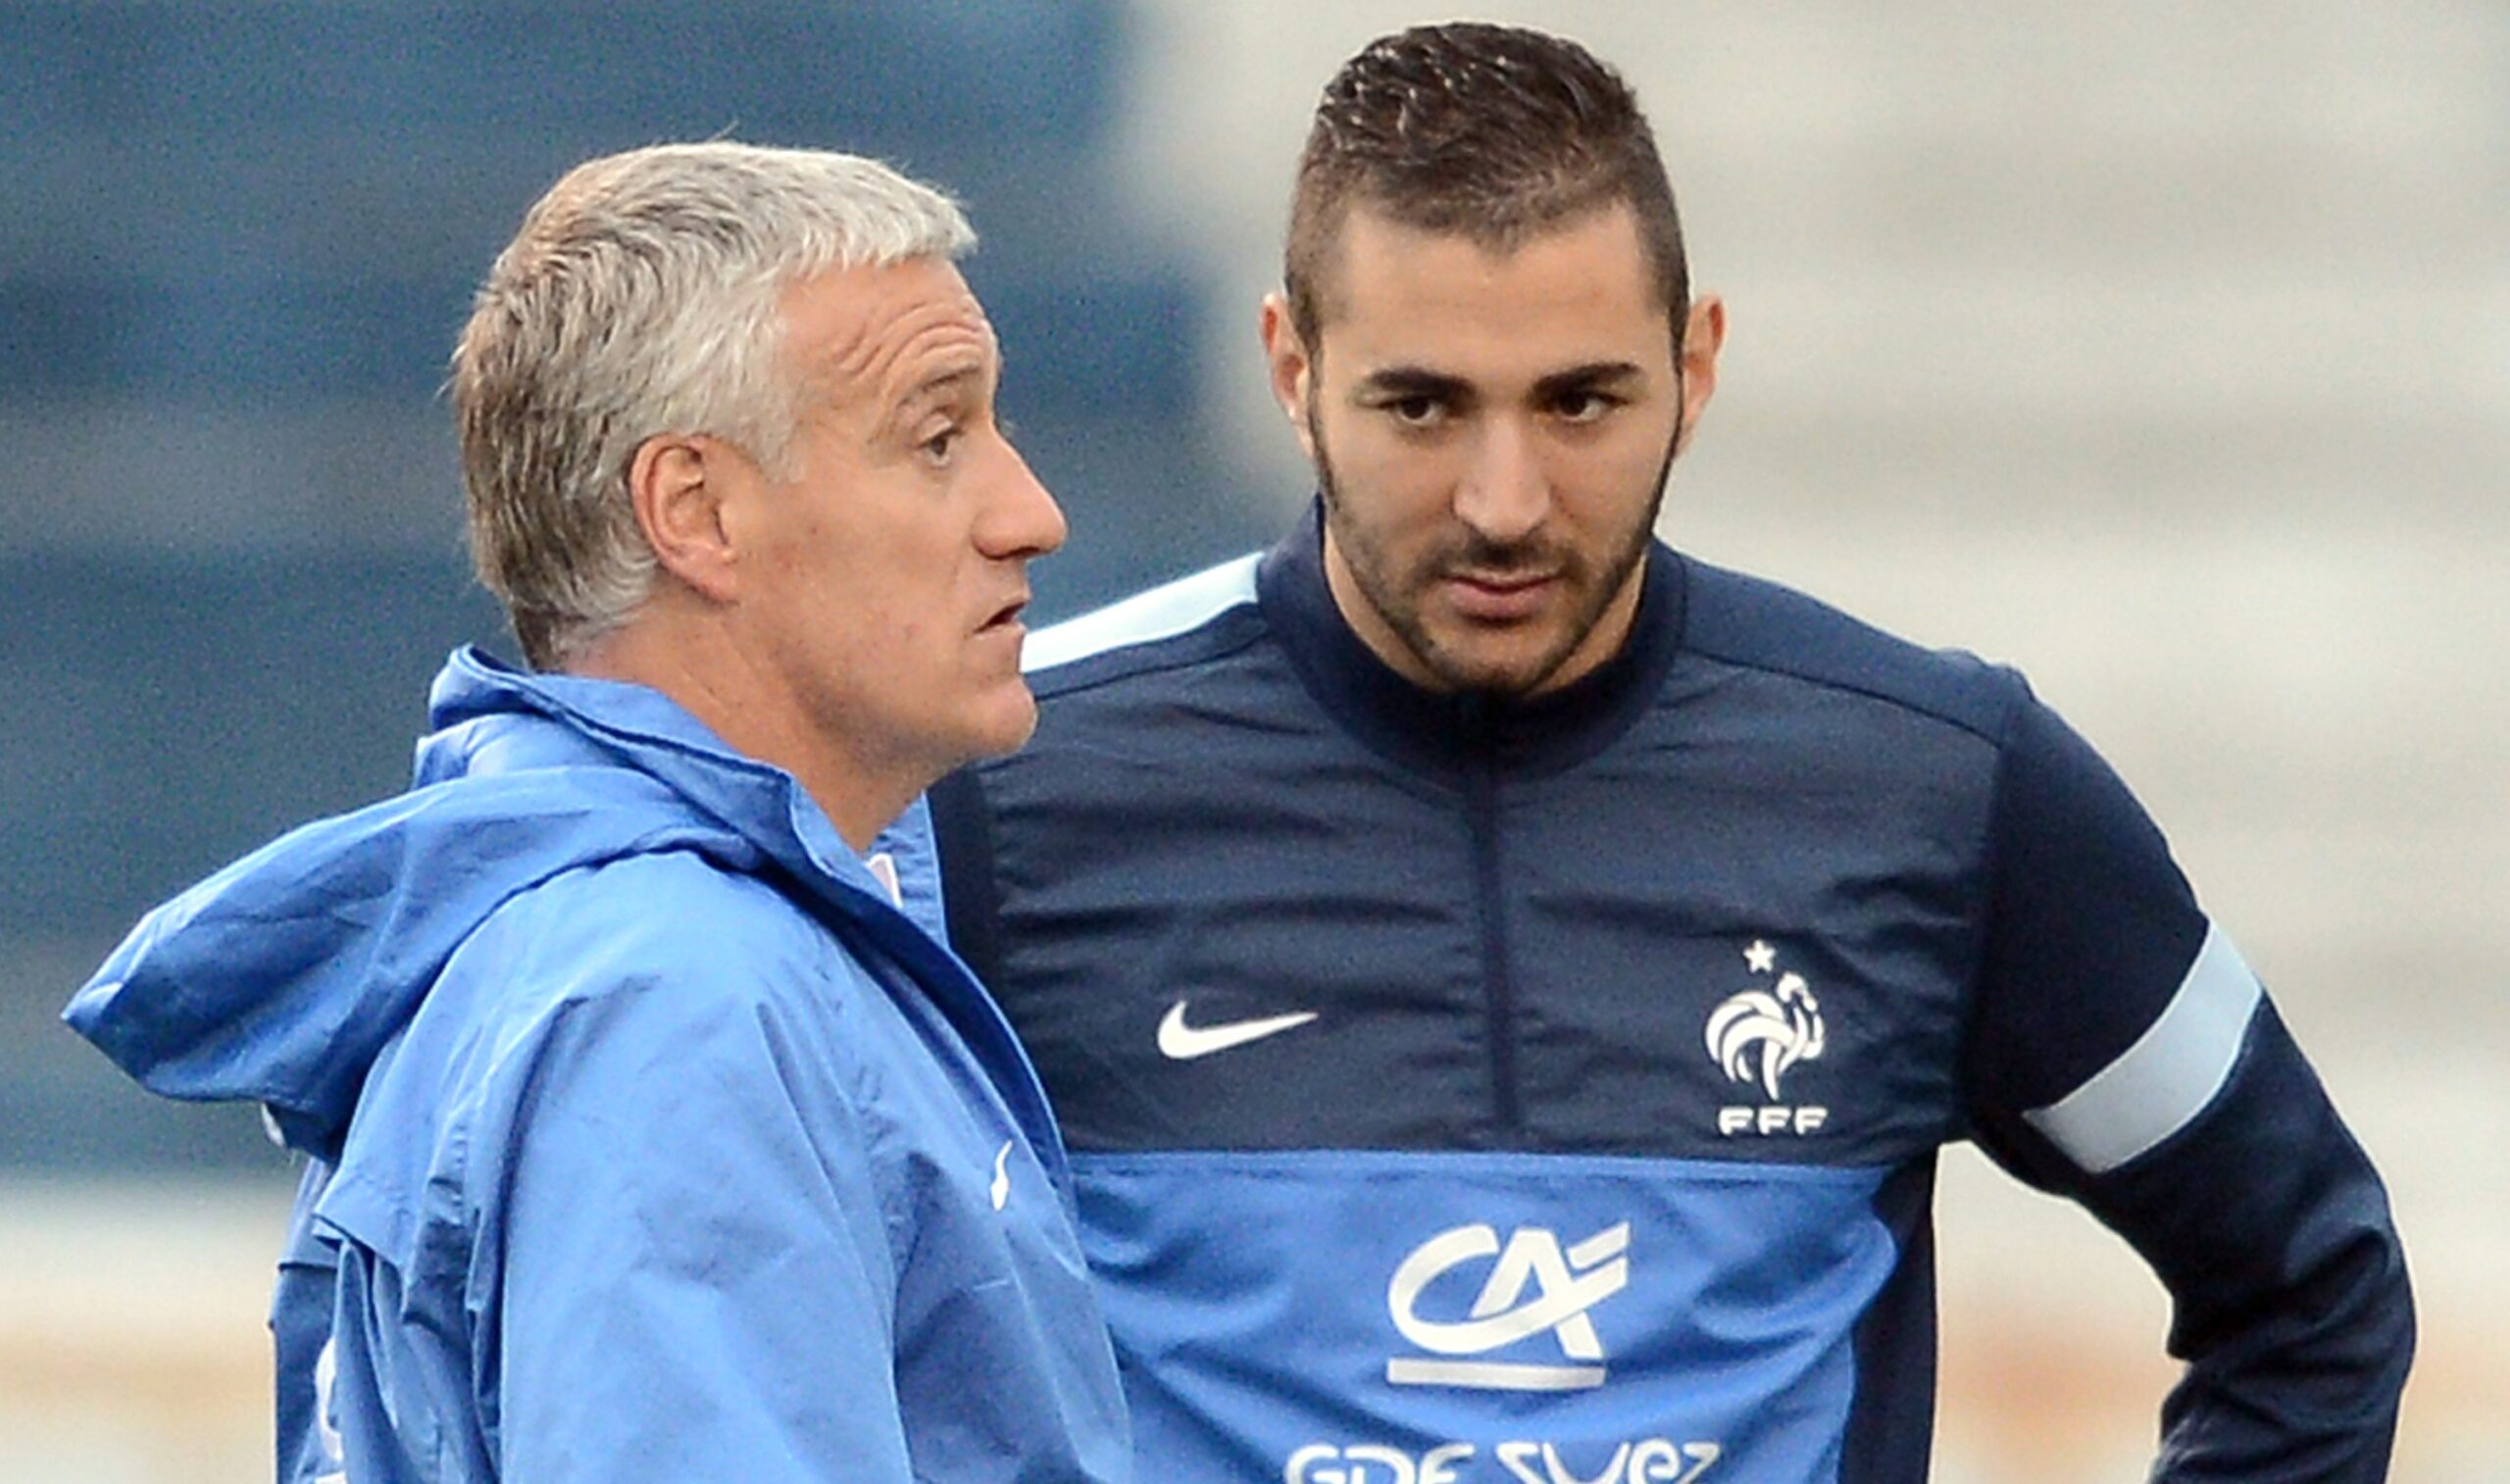 French national football team's head coach Didier Deschamps (L) speaks with next to forward Karim Benzema (C) during a training session at the Gremio Stadium in Porto Alegre, Brazil on June 6, 2013 .  AFP PHOTO / FRANCK FIFE / AFP / FRANCK FIFE        (Photo credit should read FRANCK FIFE/AFP/Getty Images)